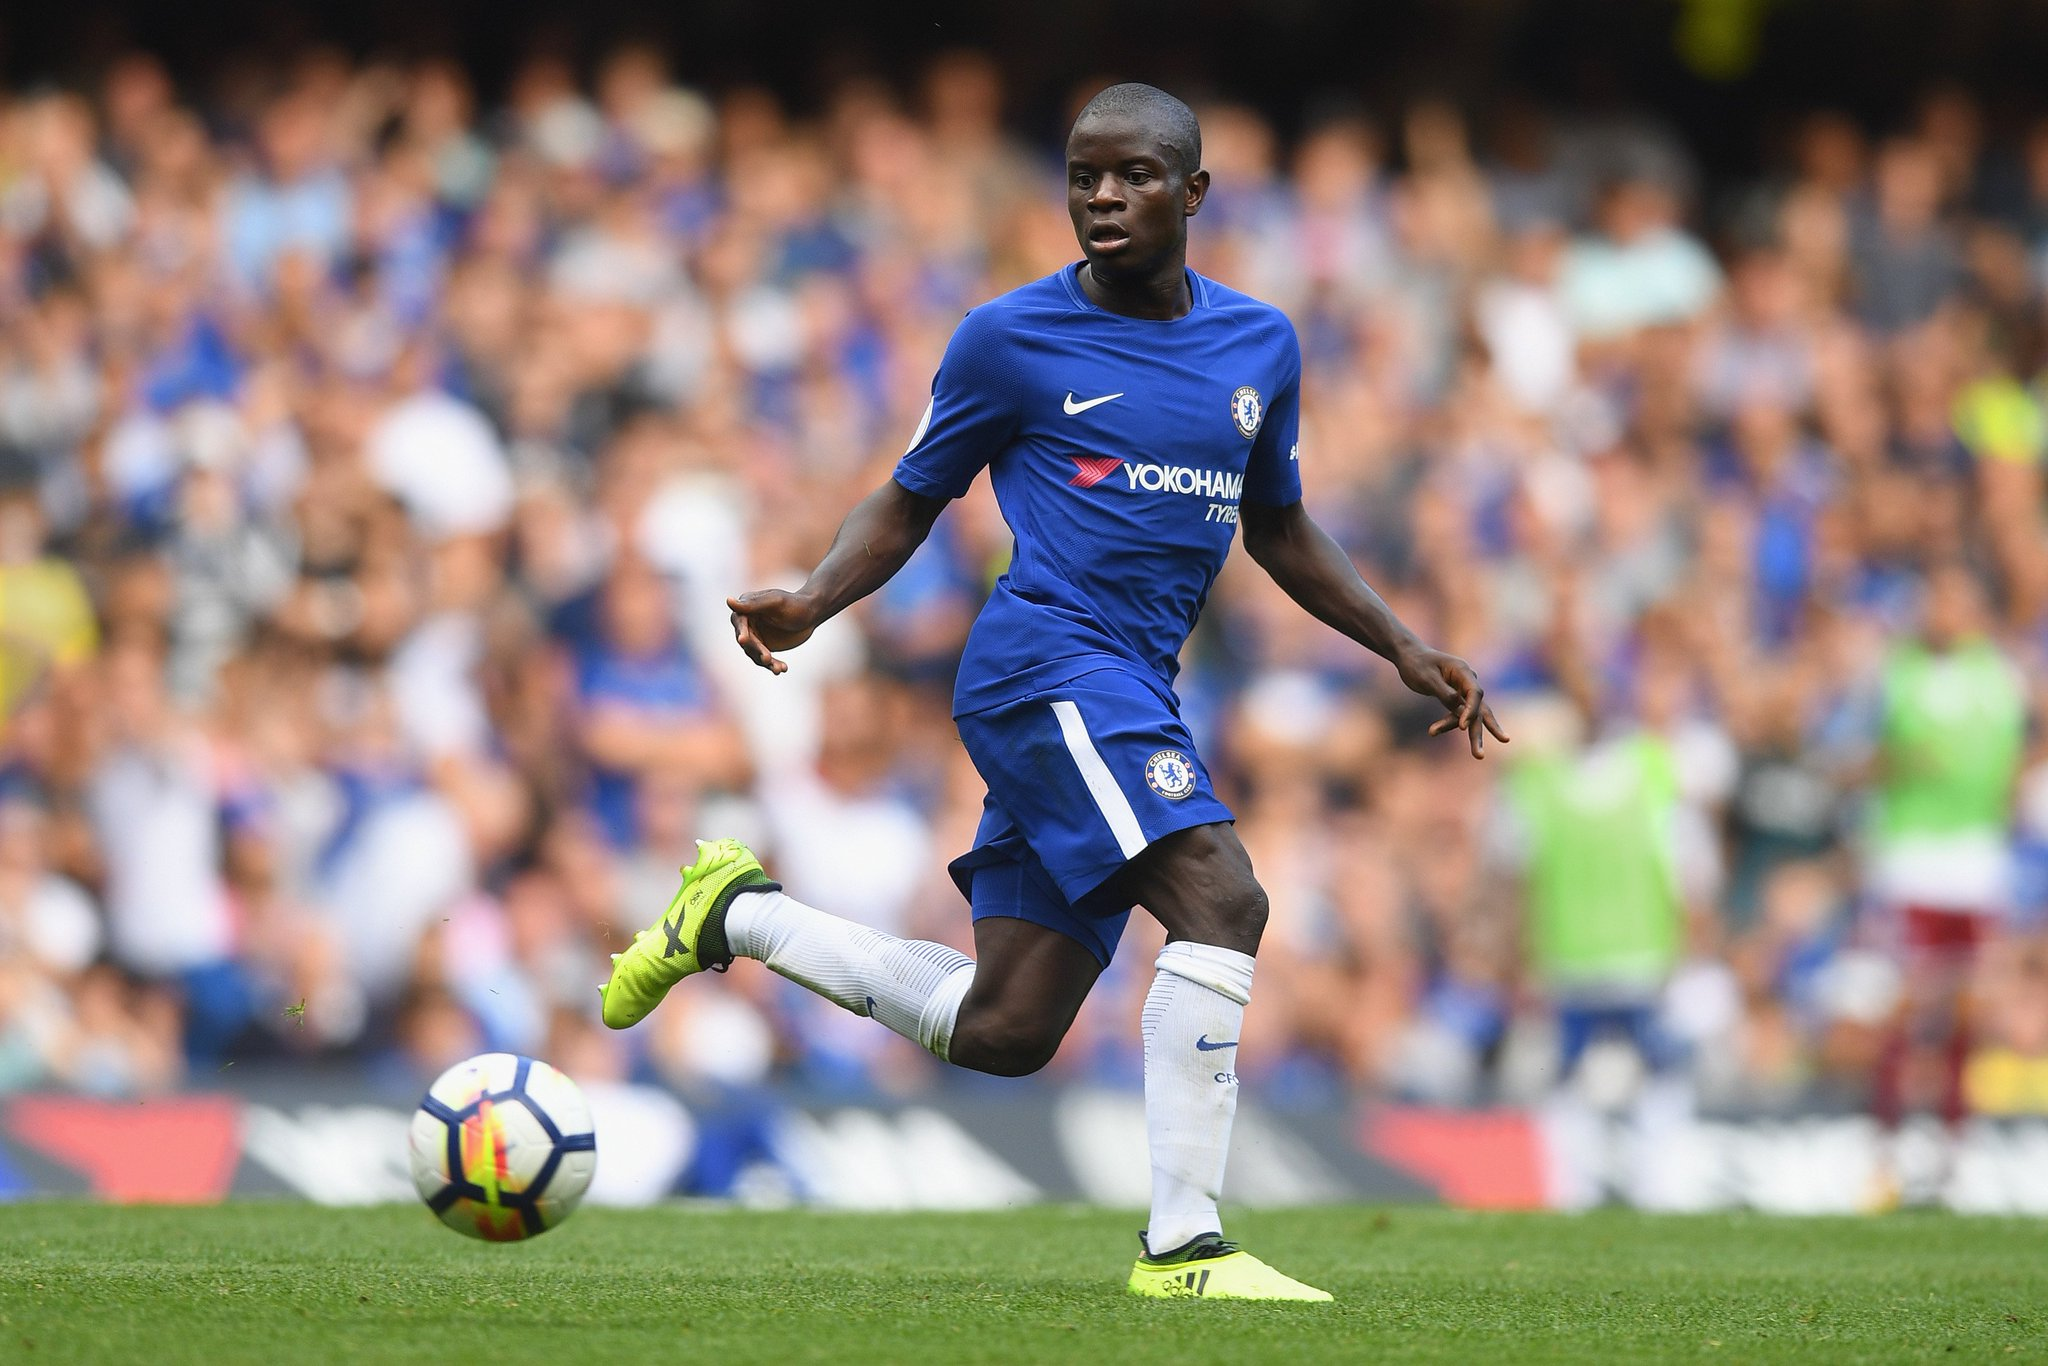 'N'Golo Kante is a big loss' - Conte.  Chelsea team news ➡️https://t.co/ylstKzPgpL https://t.co/1c7oZ5hjhJ